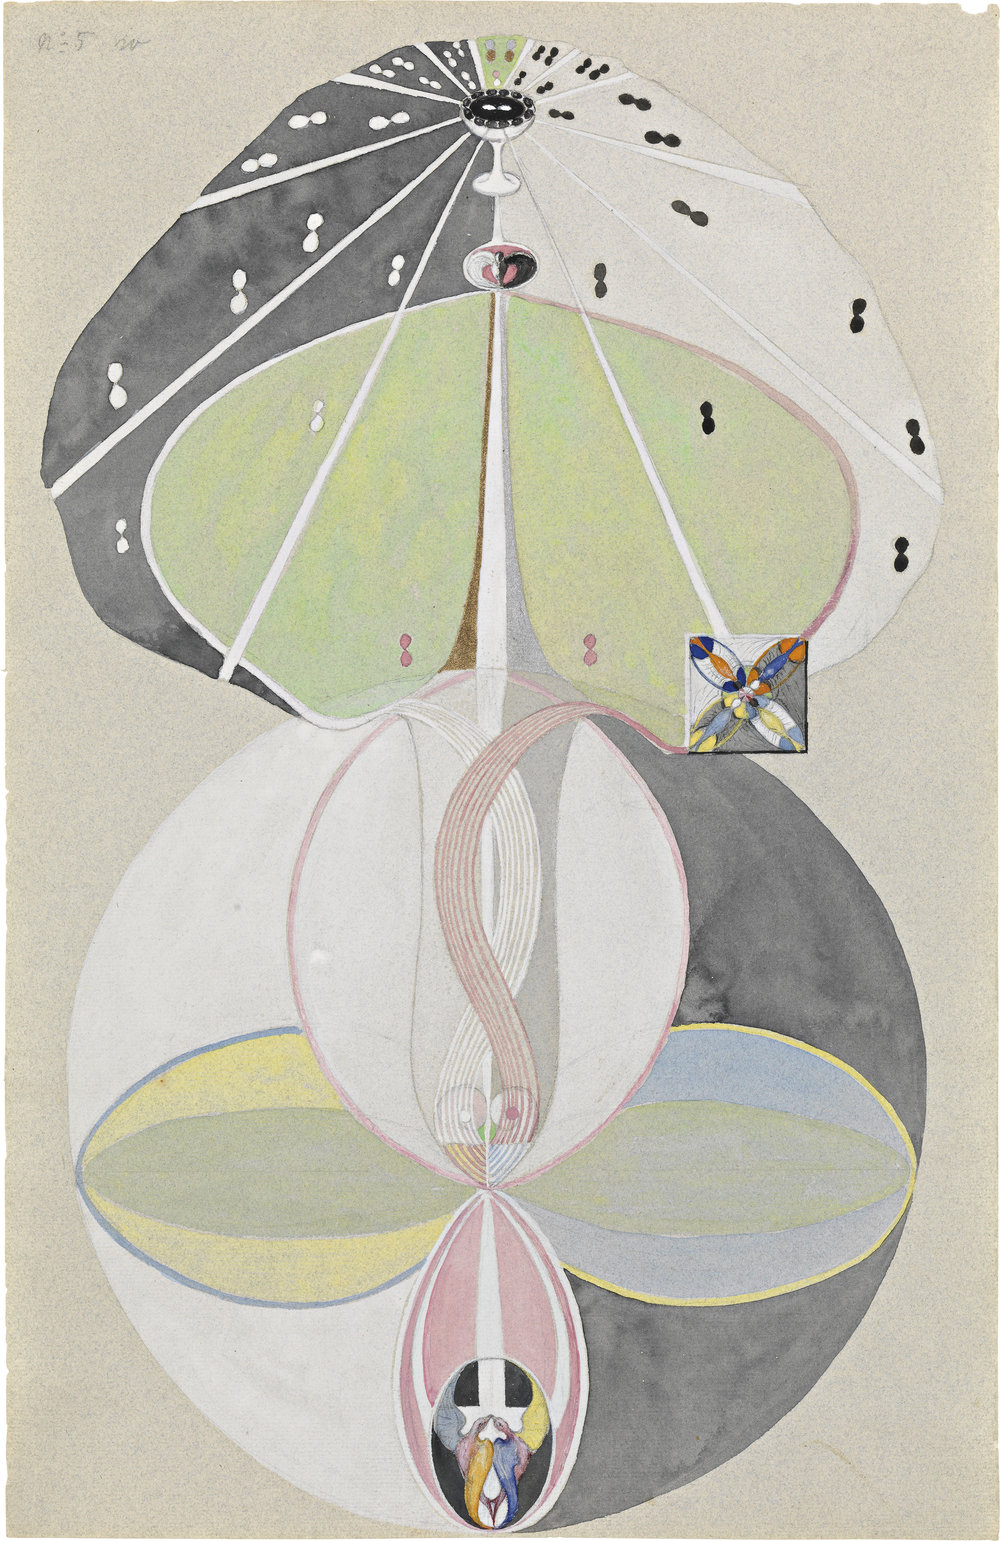 Hilma af Klint,  Tree of Knowledge, No. 5  ( Kunskapens träd, nr 5 ), 1915, from  The W Series  ( Serie W ), Watercolor, gouache, graphite and metallic paint on paper 18 1/16 x 11 5/8 inches (45.8 x 29.5 cm), The Hilma af Klint Foundation, Stockholm, Photo: Albin Dahlström, the Moderna Museet, Stockholm.